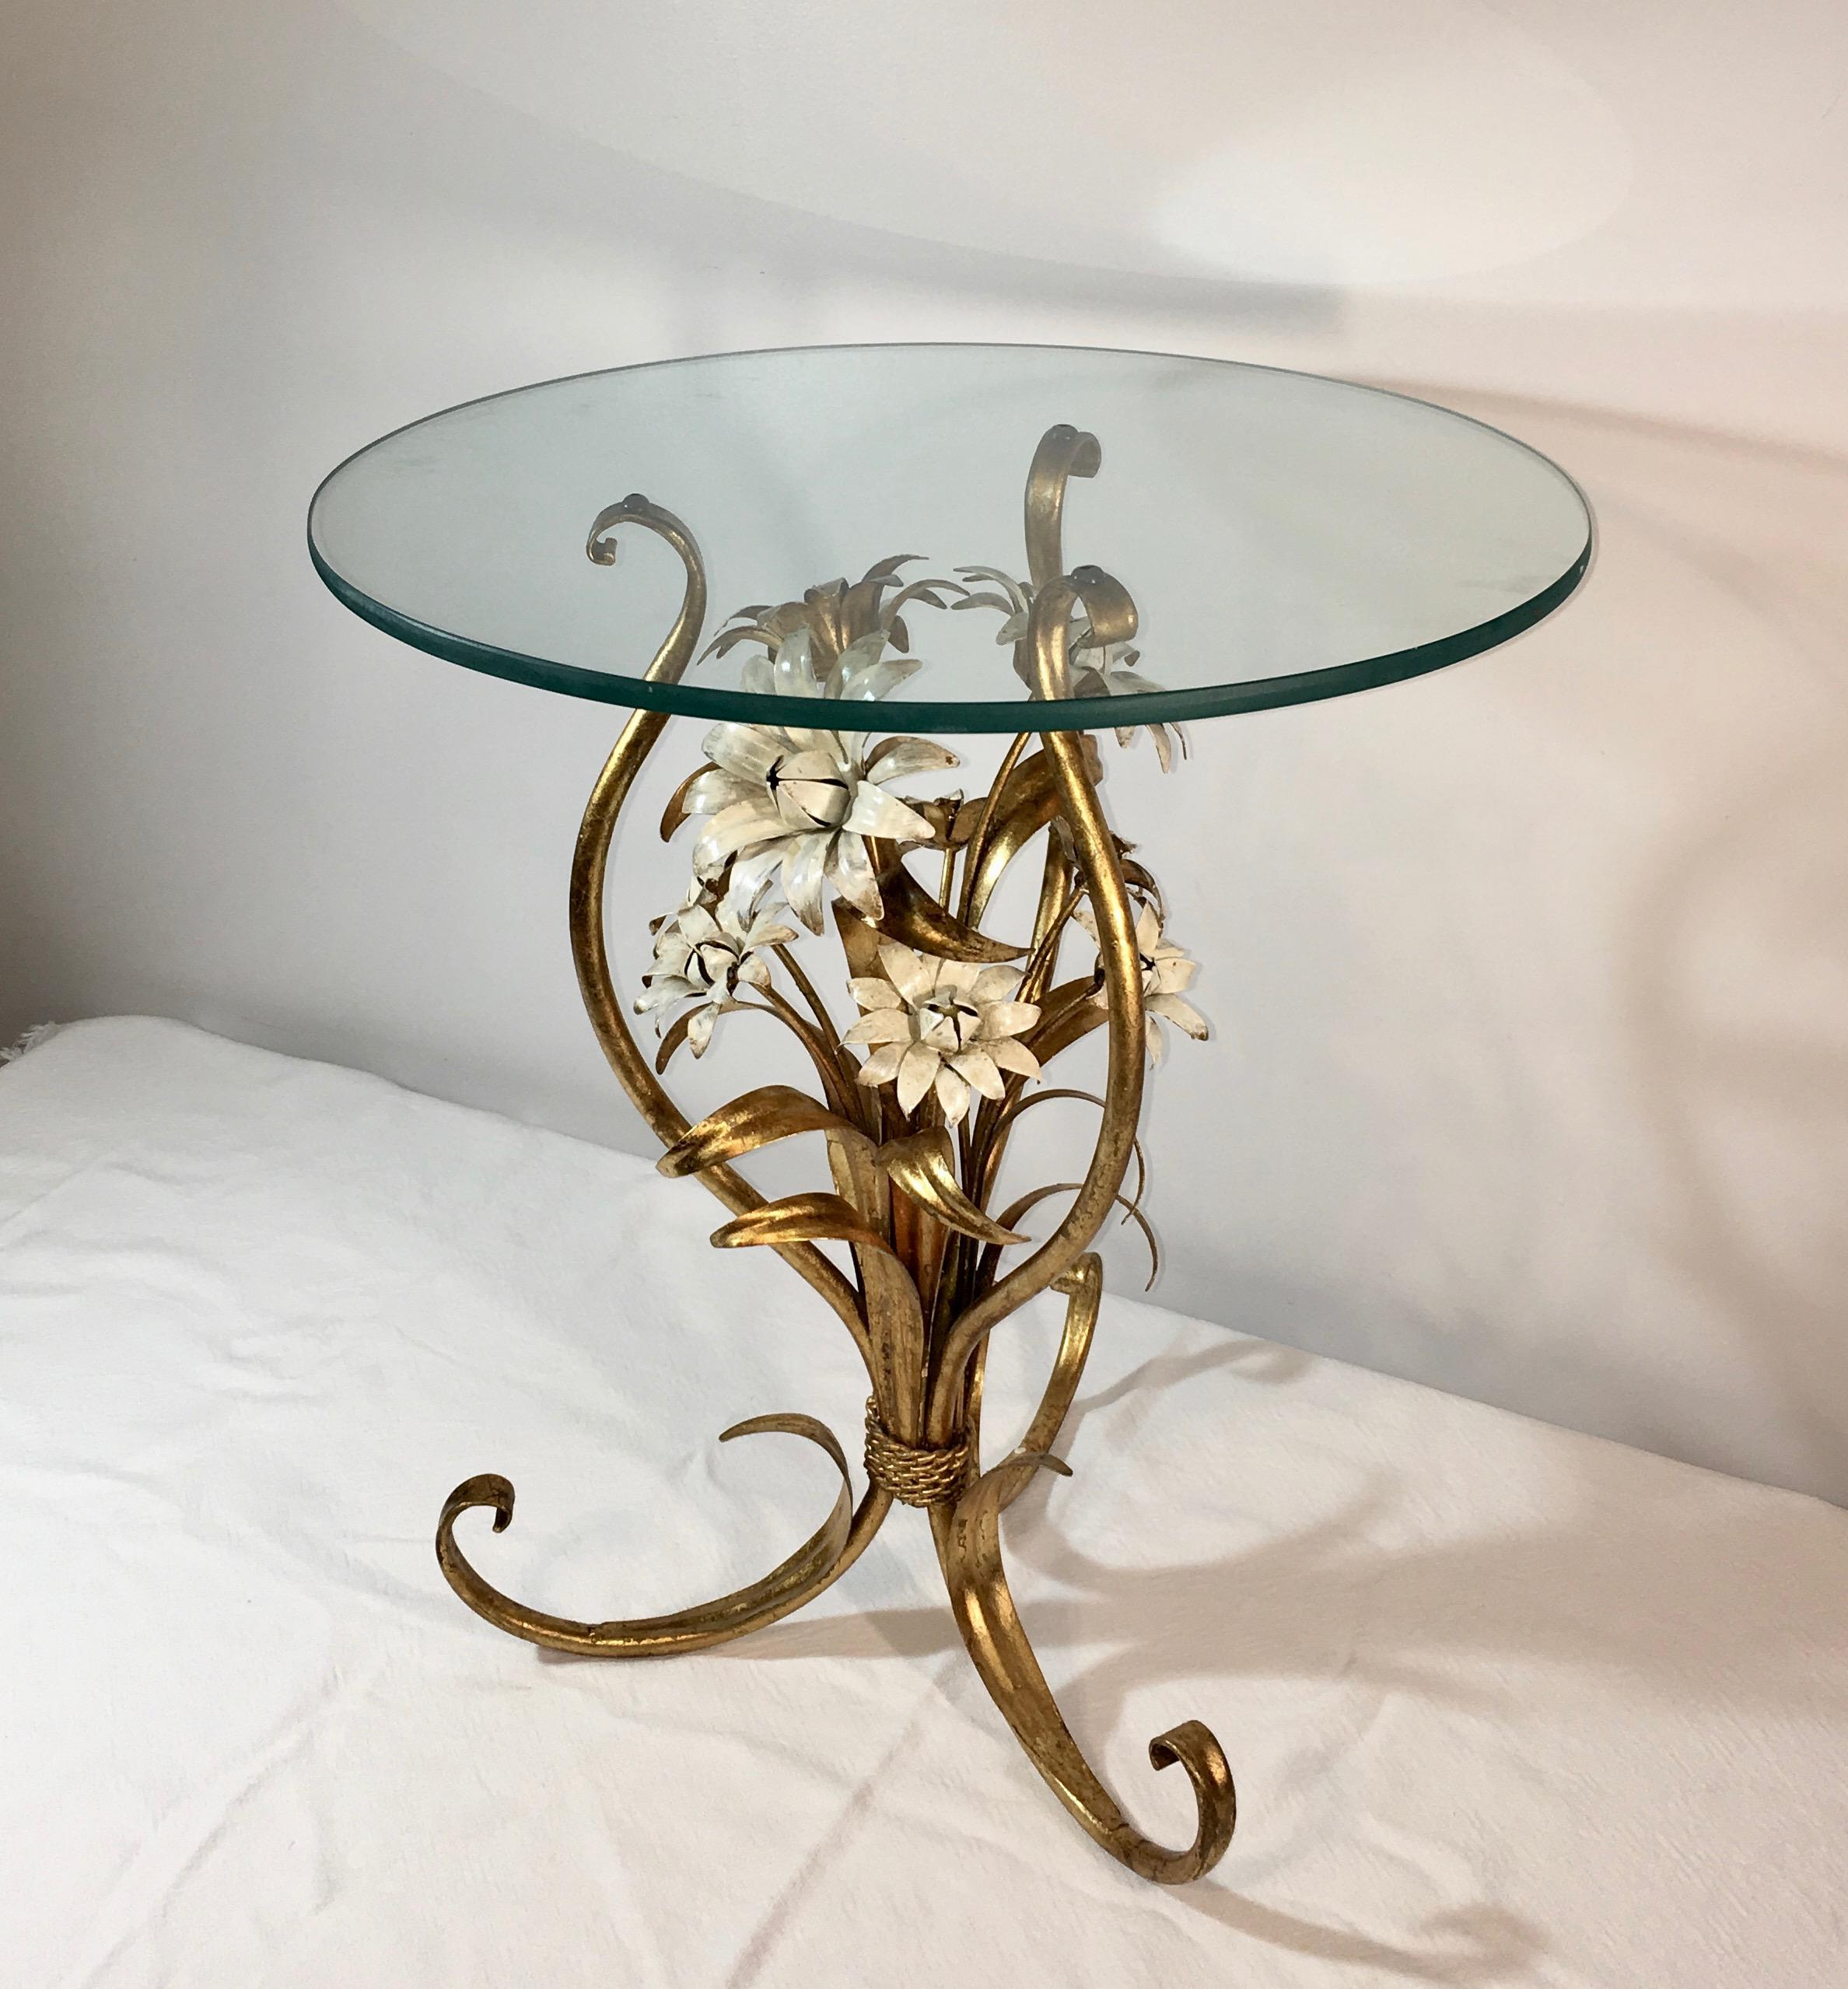 glass accent table hammered metal laeti vintage mid century flowers and related post coffee end tables real wood garage threshold seal bedroom furniture packages ikea garden